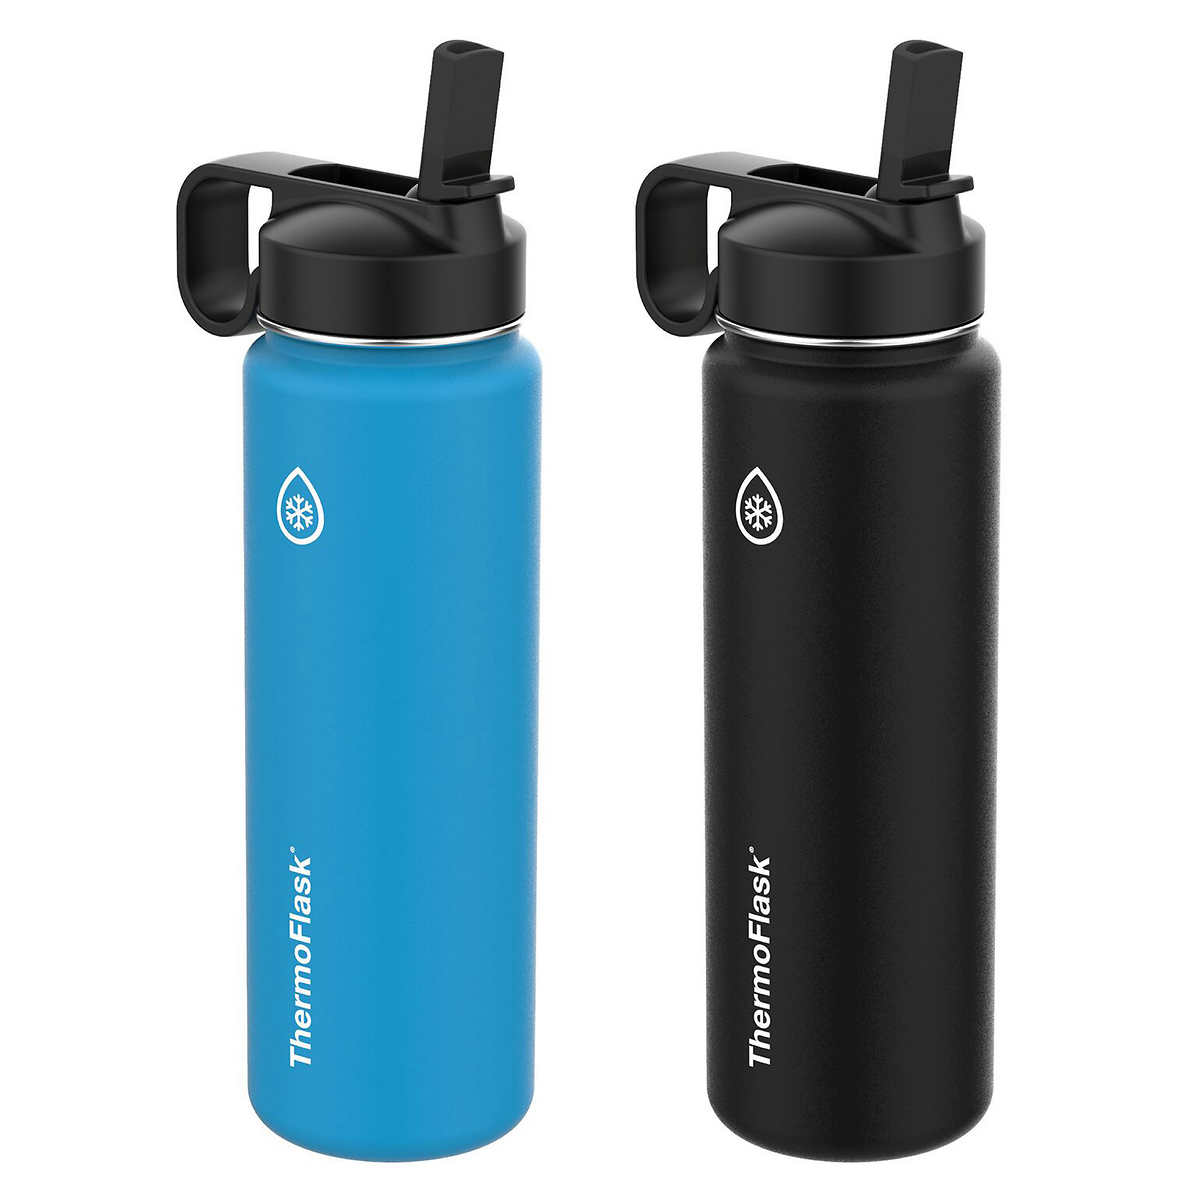 6a3209b4c7e Thermoflask Stainless Steel 24oz Water Bottle with Straw Lid